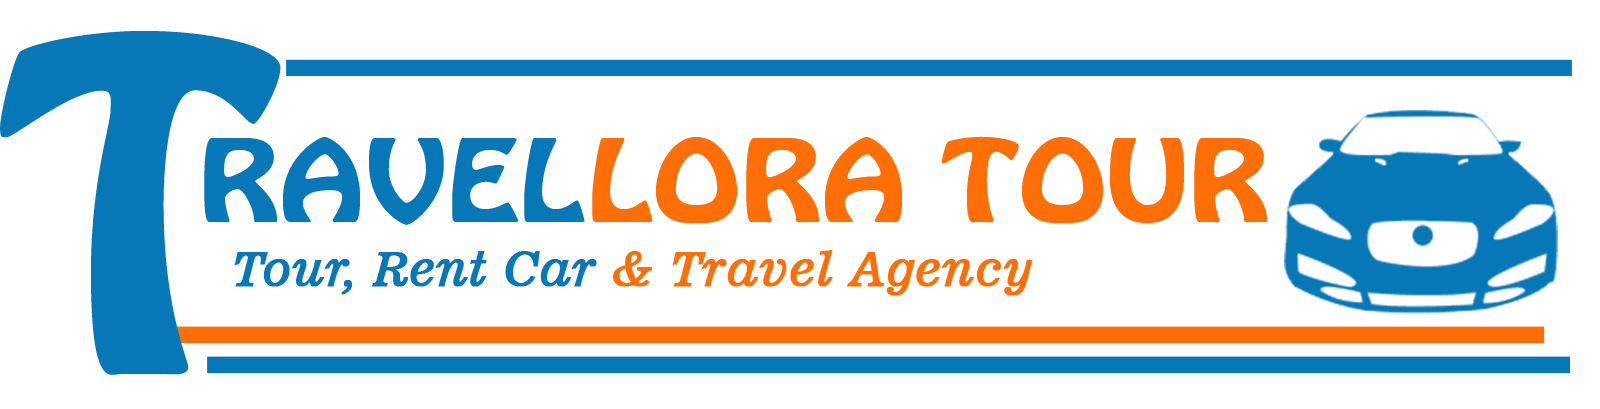 Travellora Tour